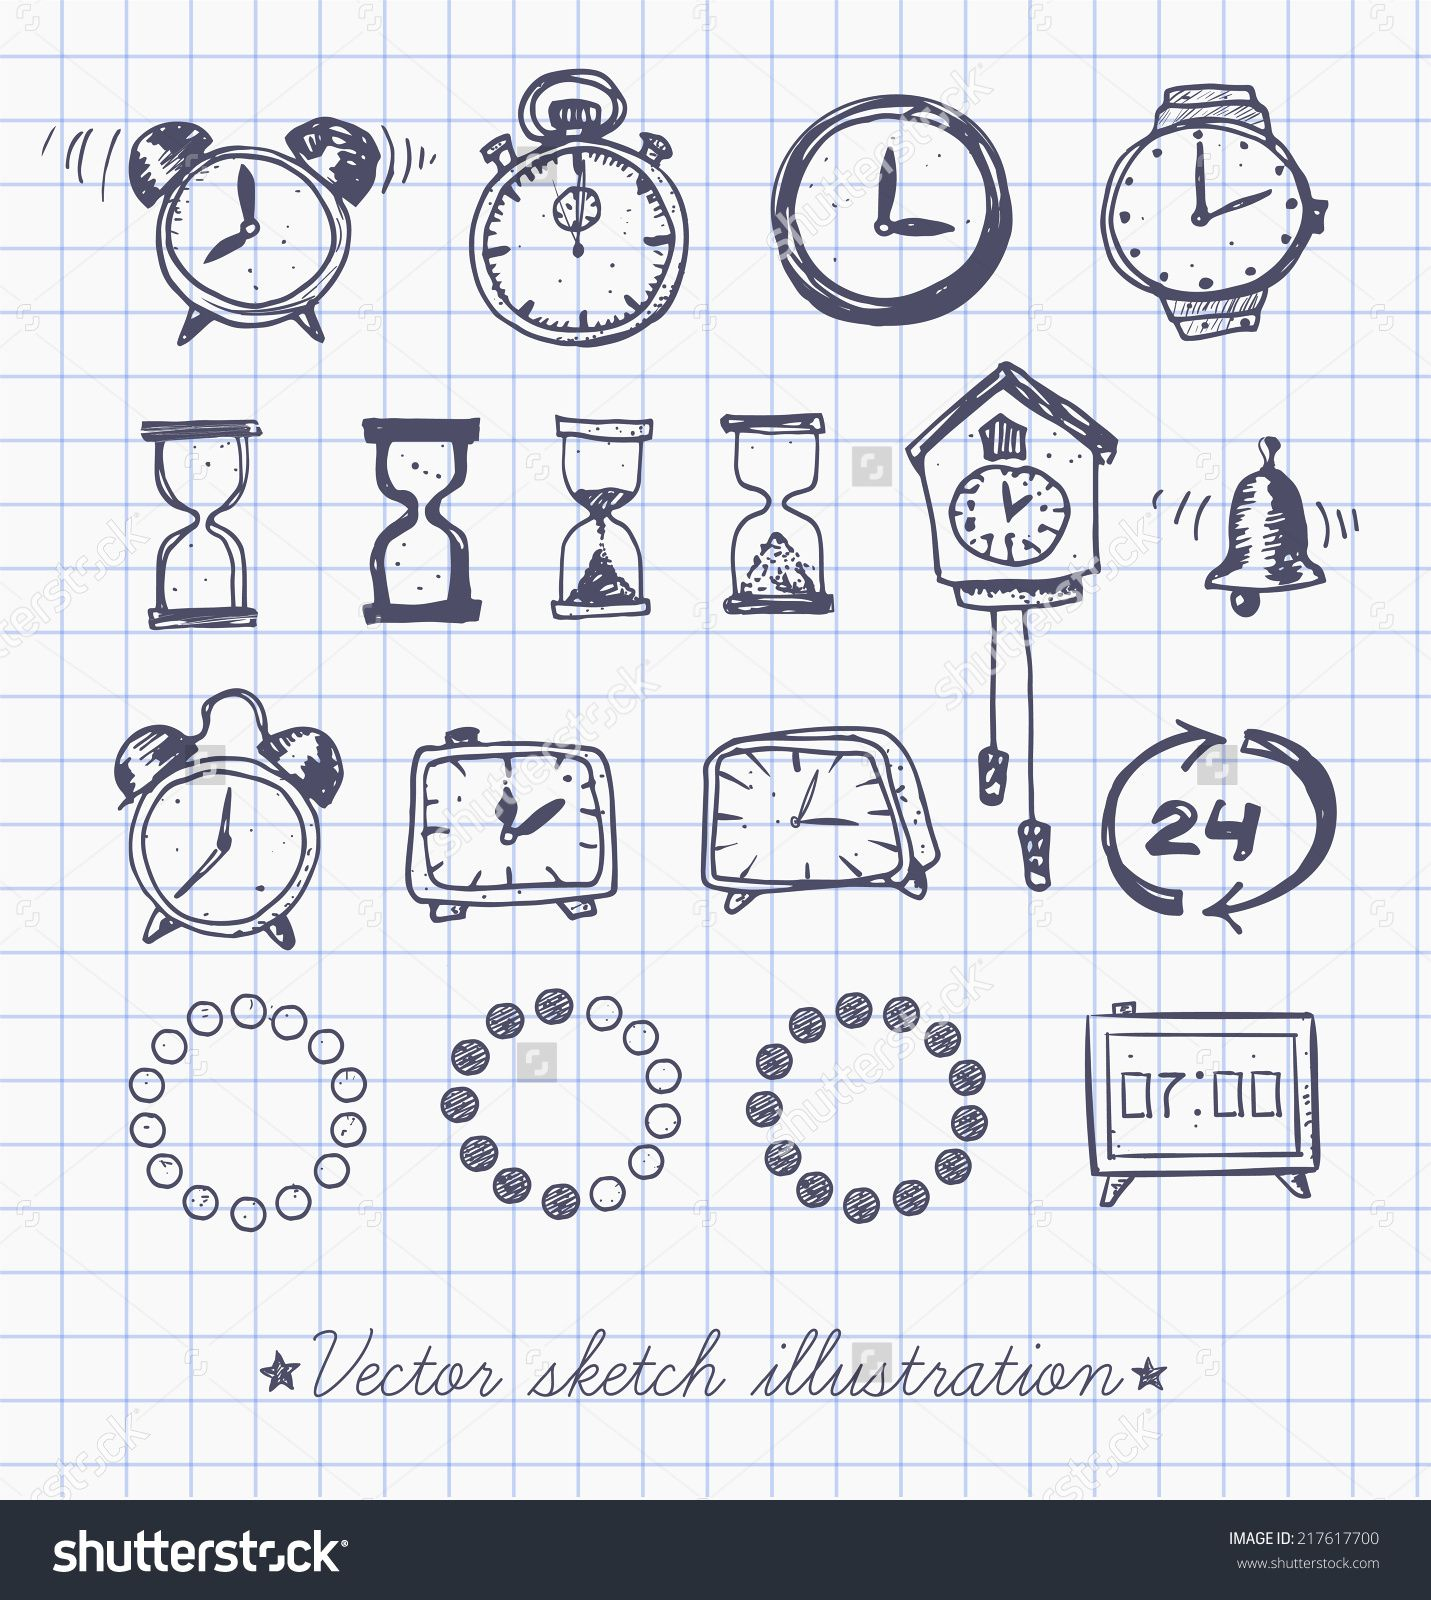 Symbols Of Time Passing Google Search Pinterest